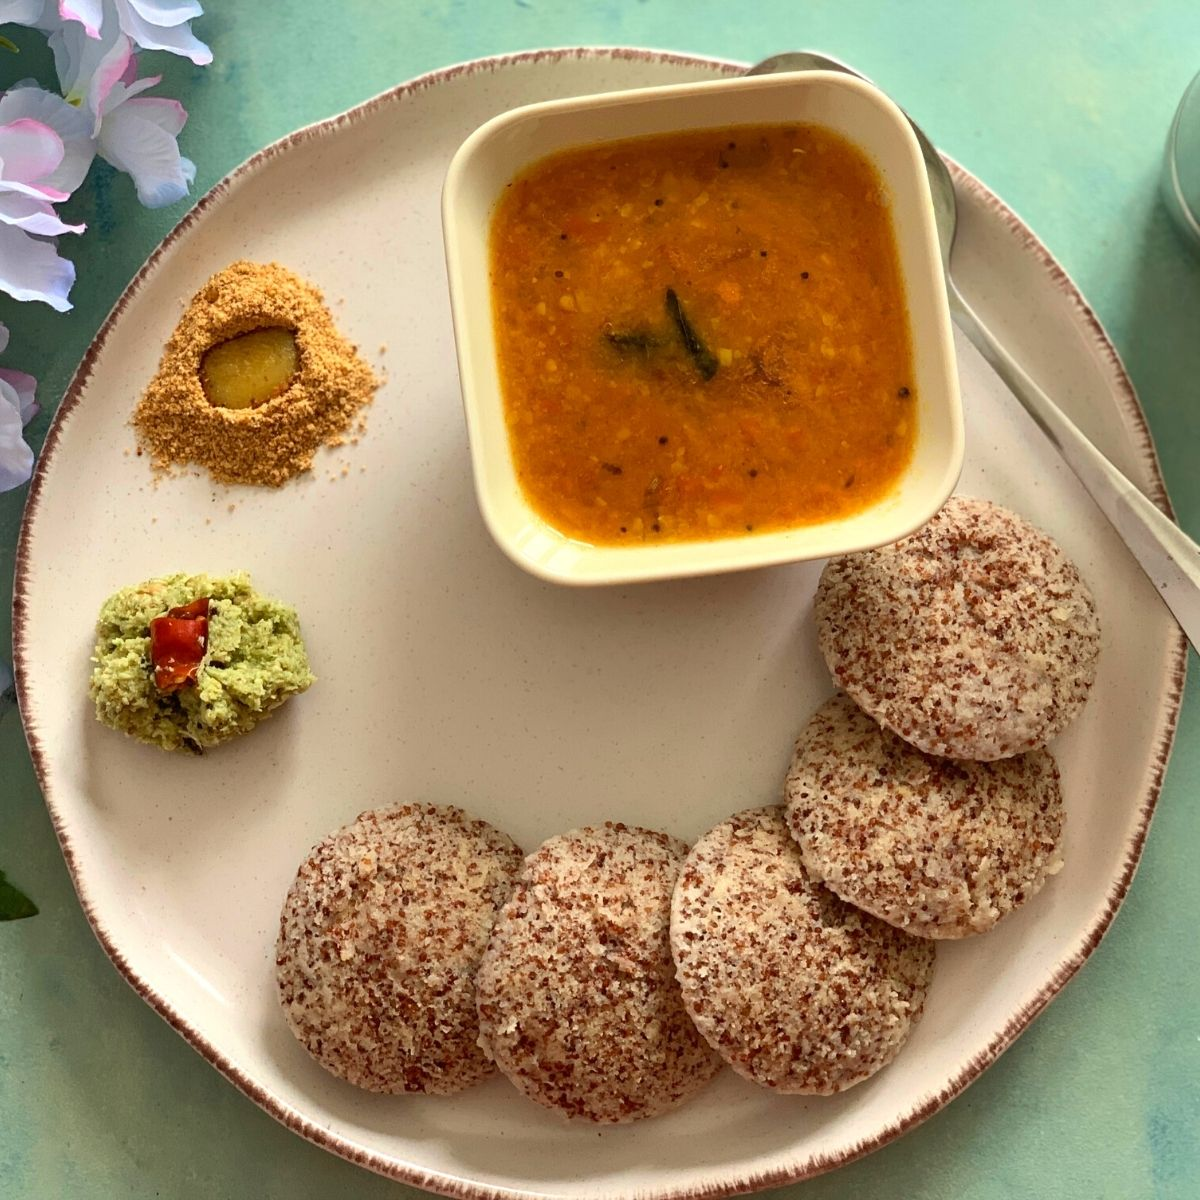 Fermented Ragi Idli are healthy, steamed vegan & gluten free breakfast/meal made using nutritious whole Ragi seeds also known as Finger Millet or Nachni.